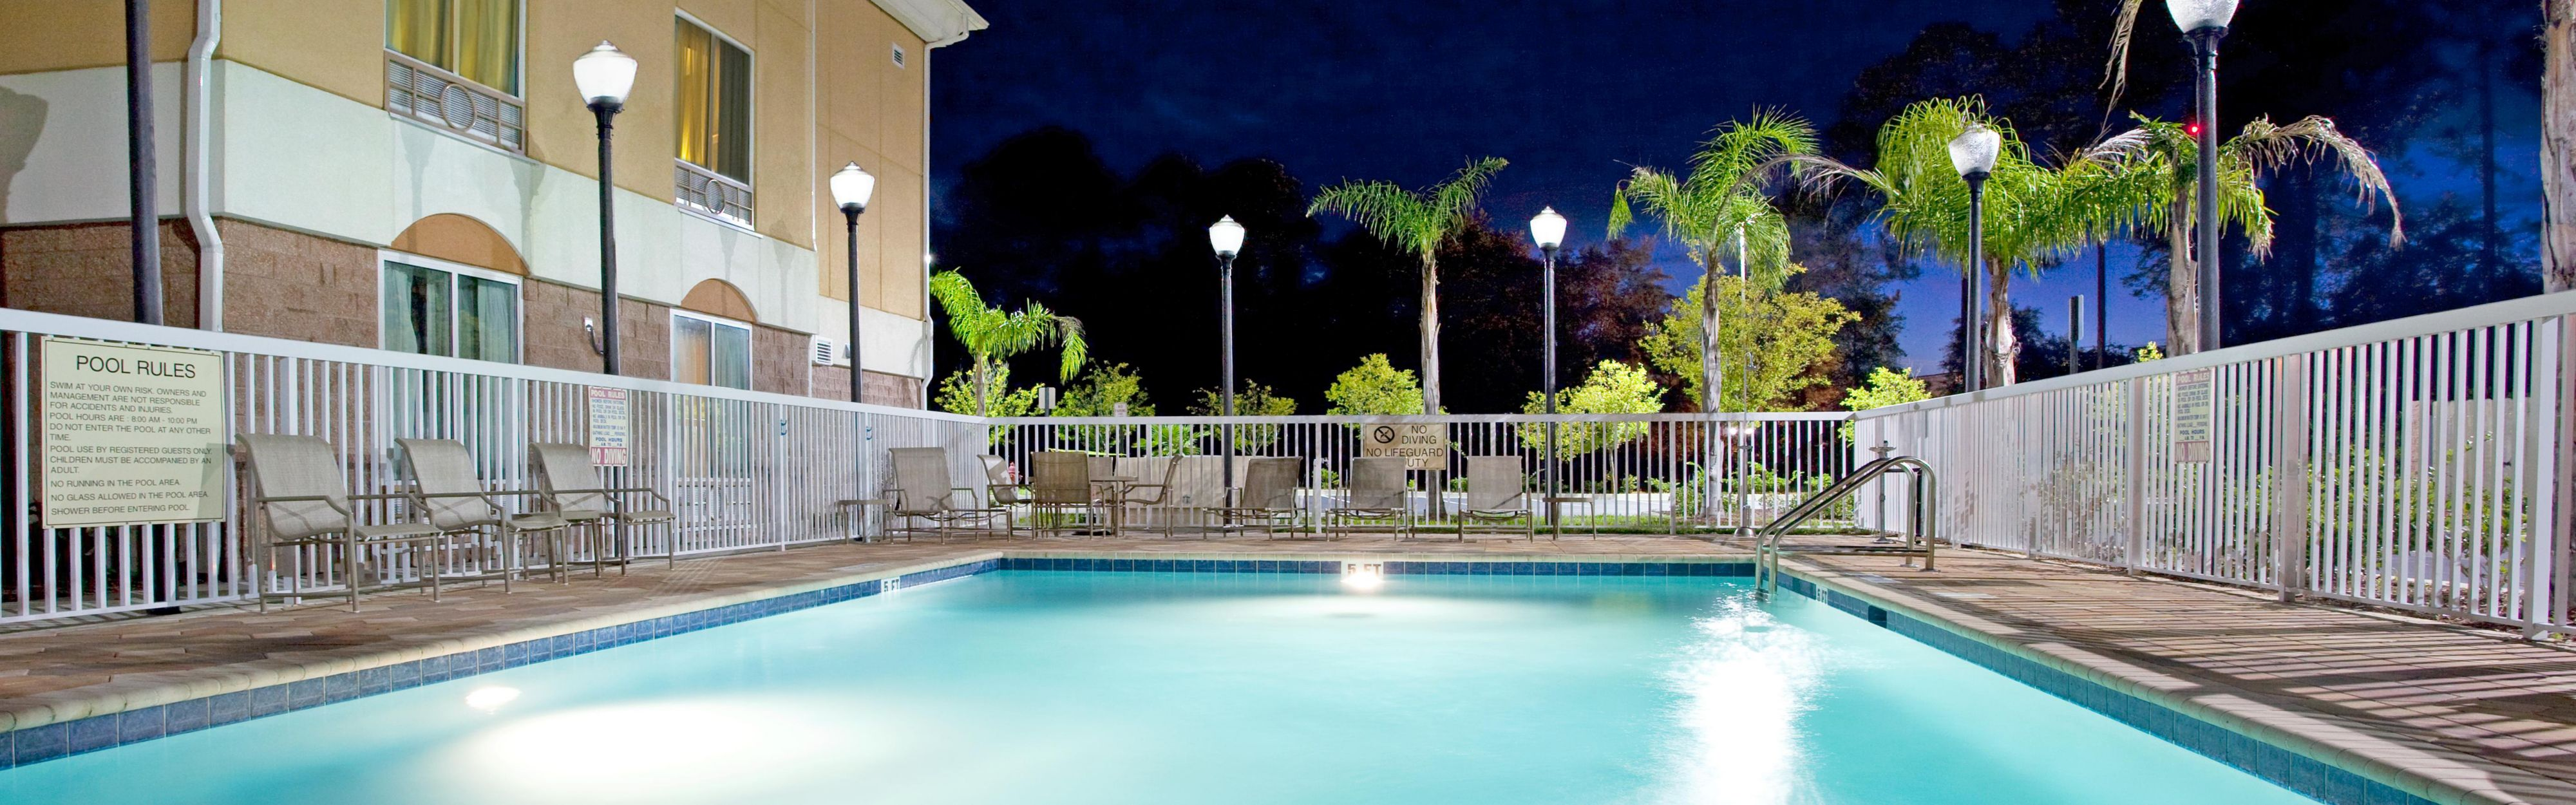 Holiday Inn Express & Suites Jacksonville North-Fernandina image 2